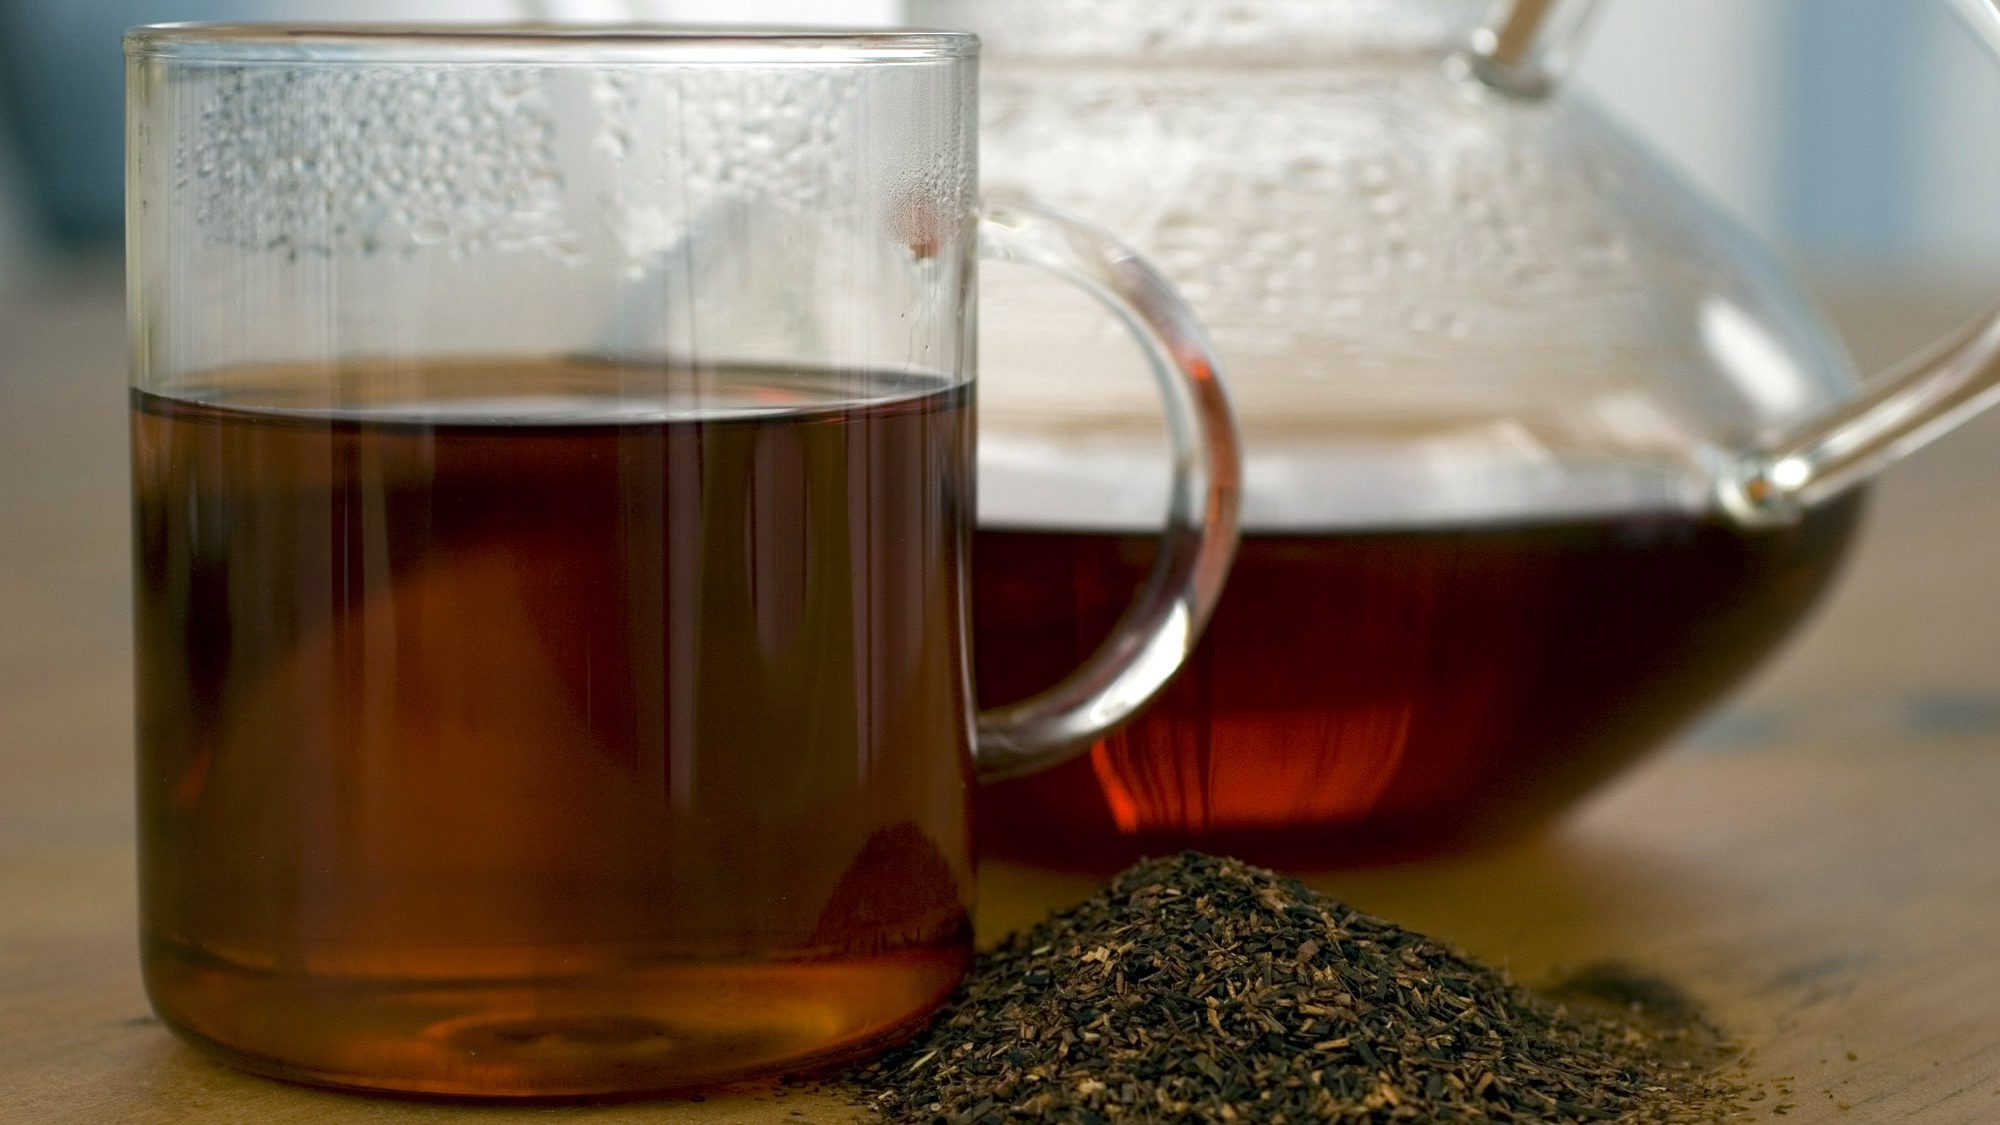 Rooibos — Quartz Daily Obsession